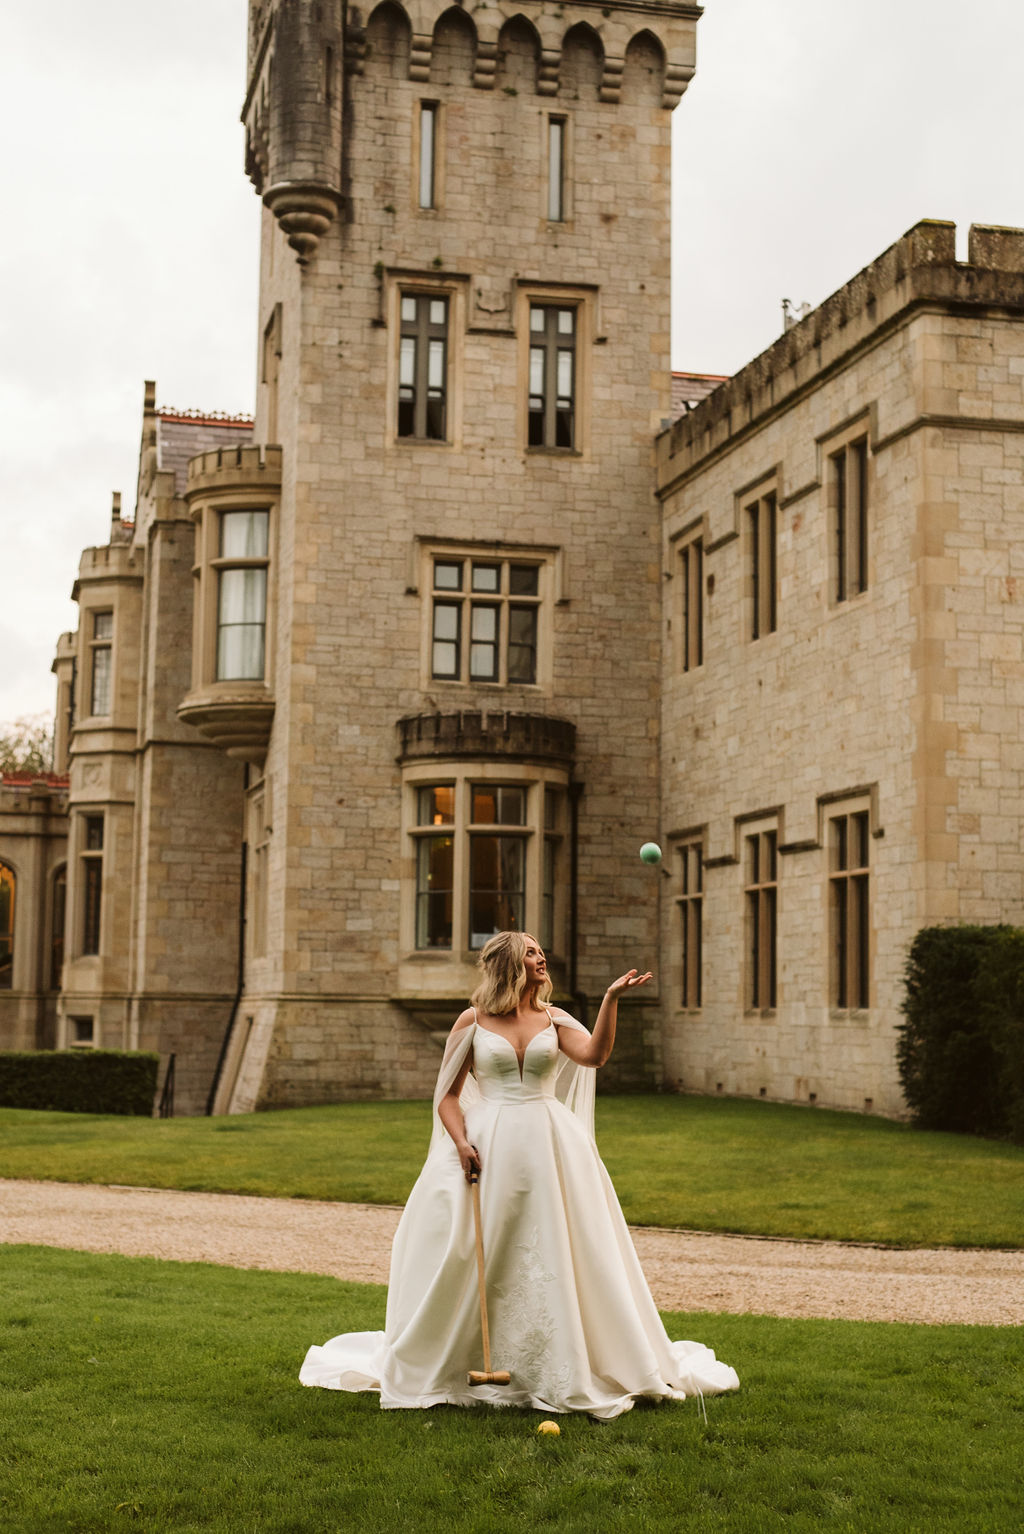 Bride wearing a mikado ballgown wedding dress with straps and tulle cape playing croquet in front of Lough Eske castle in Donegal, Ireland.